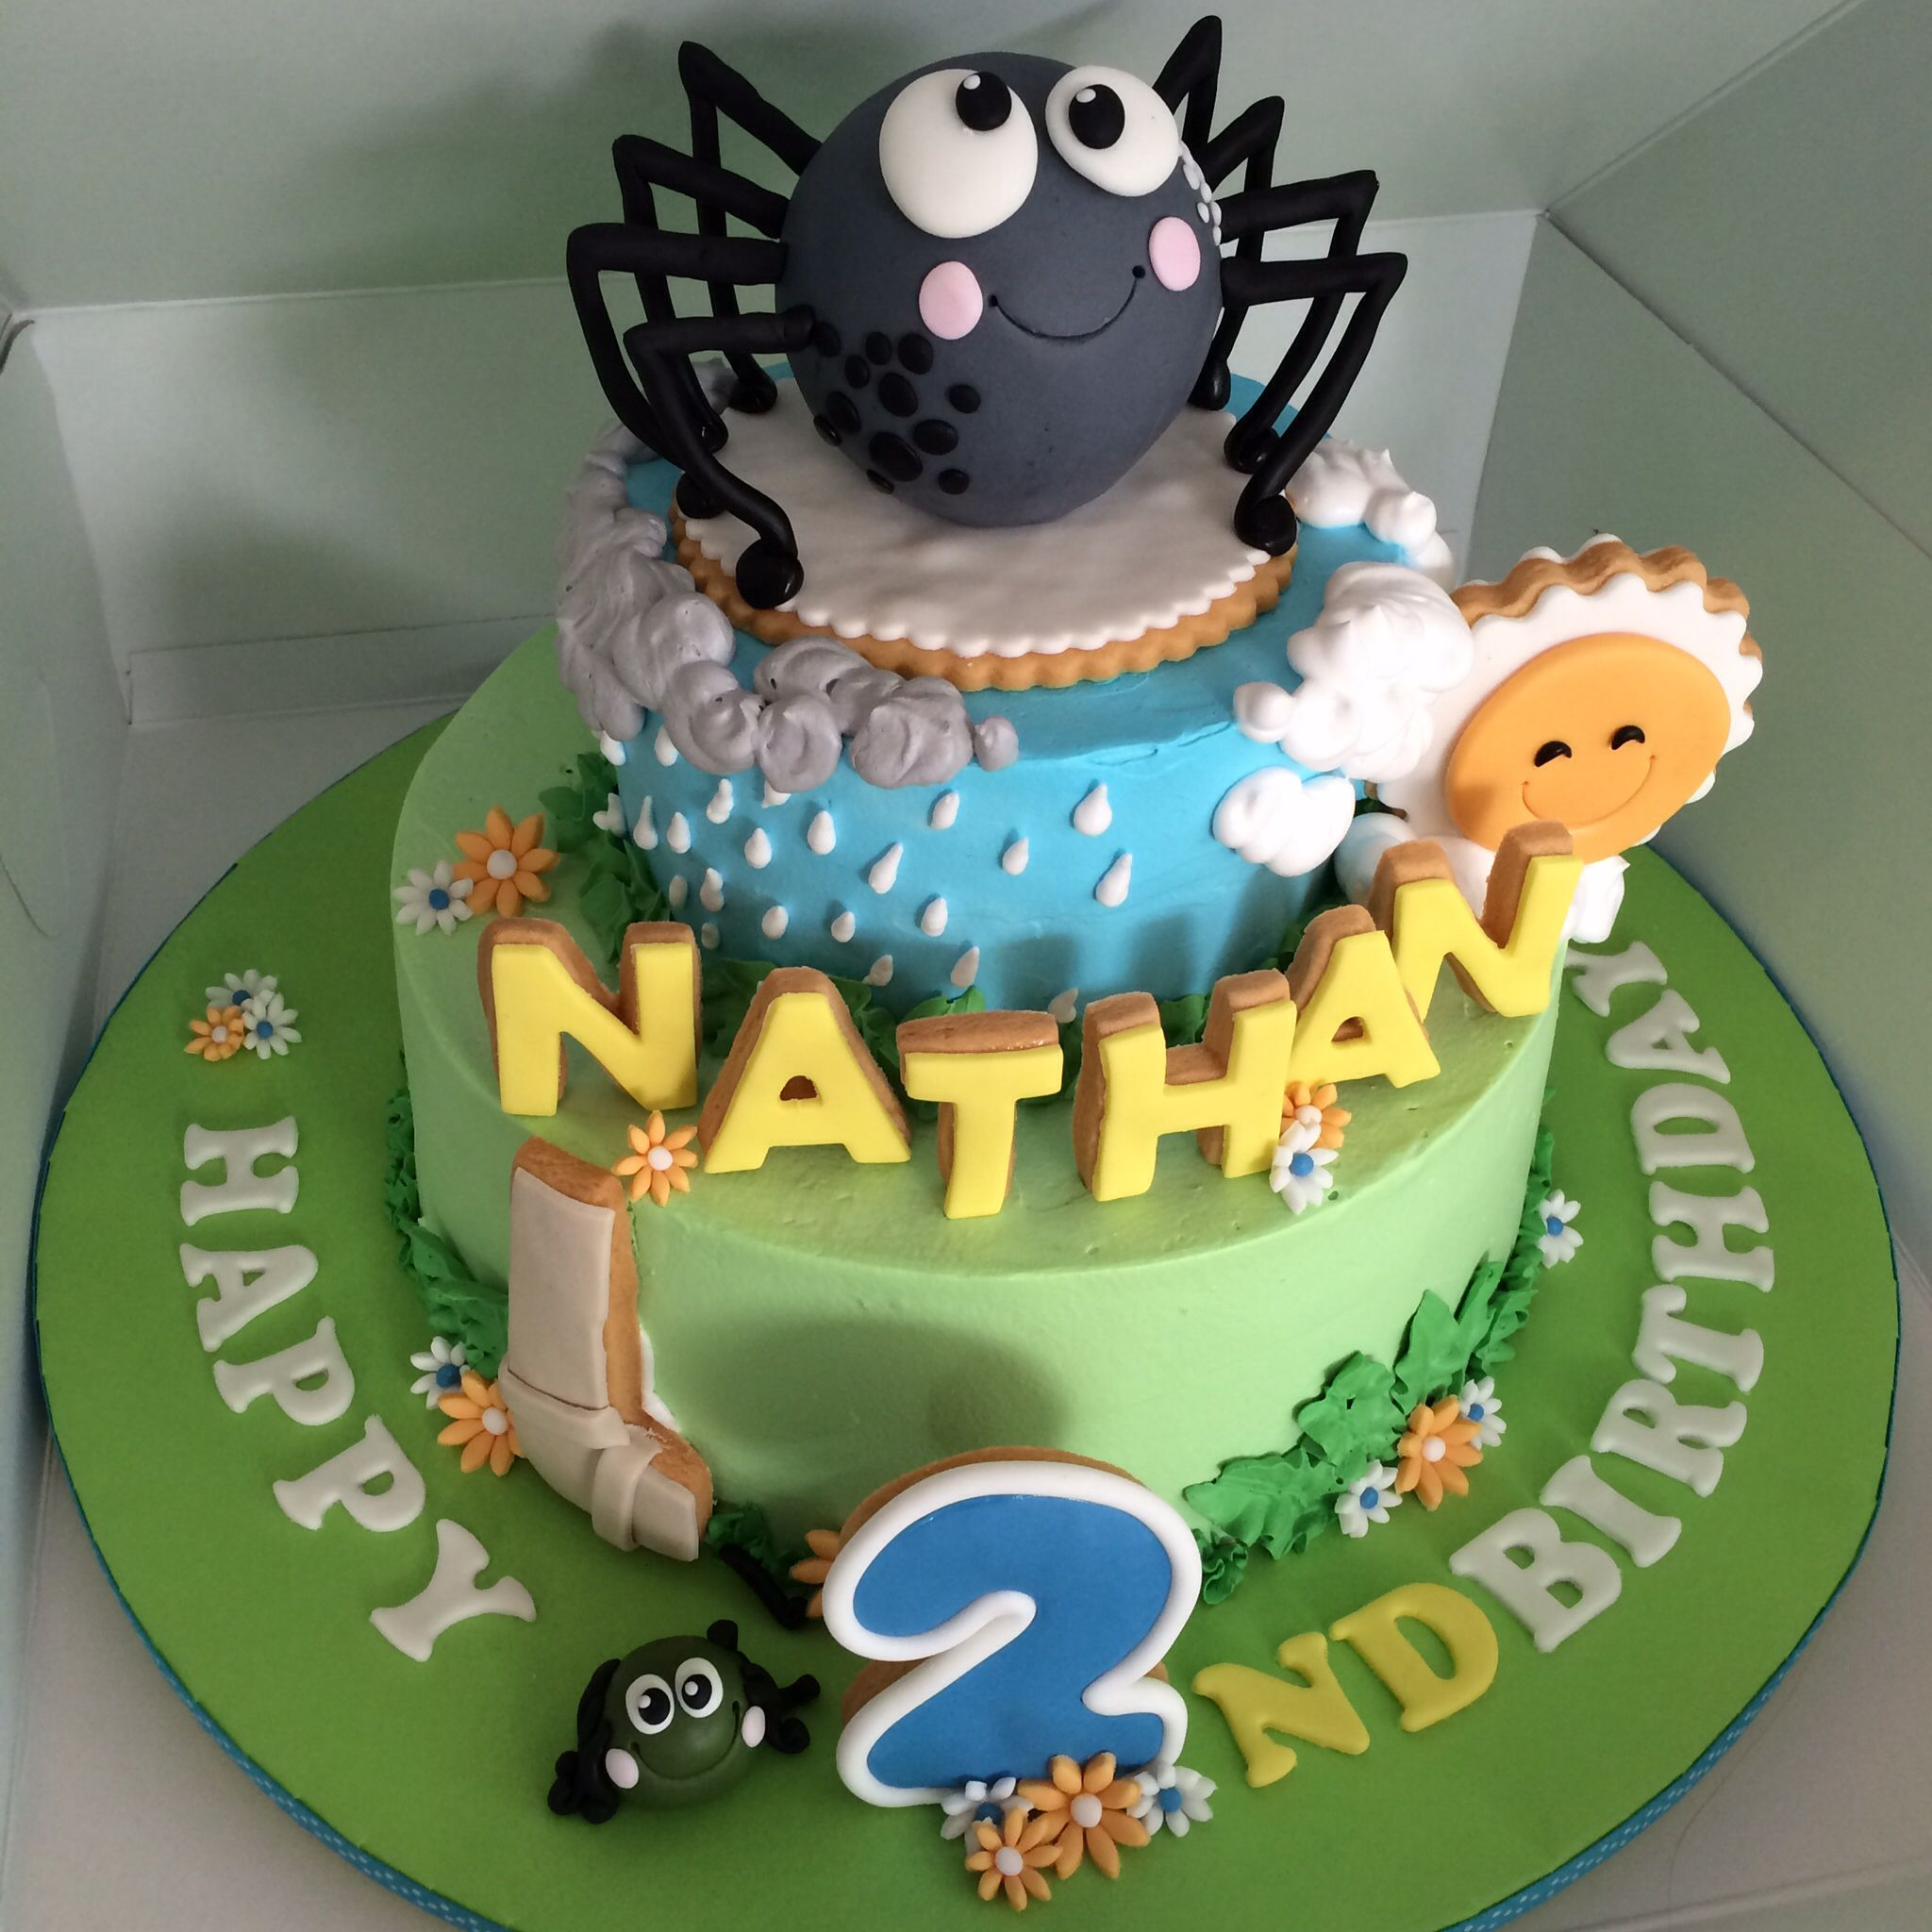 Superb Incy Wincy Spider Cake With Images Spider Cake Itsy Bitsy Funny Birthday Cards Online Barepcheapnameinfo